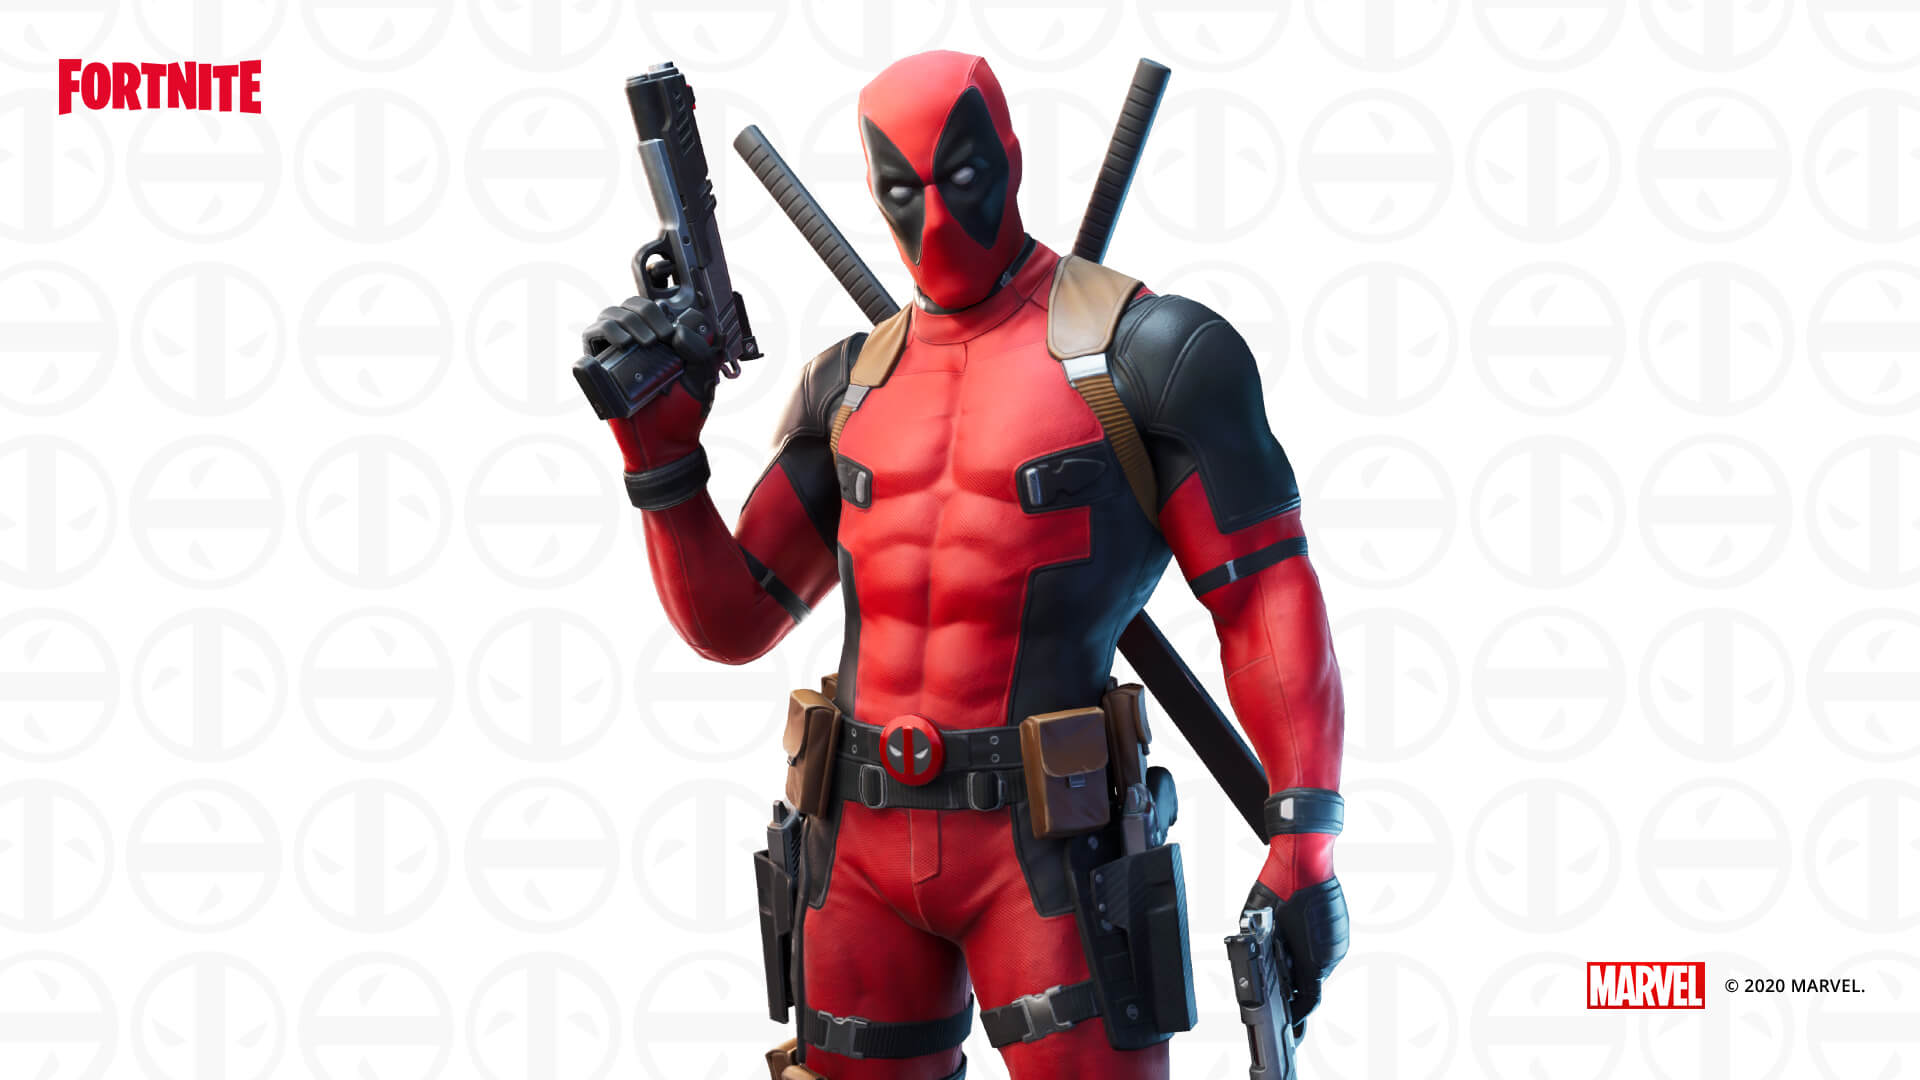 The Fortnite Deadpool Outfit is Here and Deadpool Has Taken Over The Yacht!